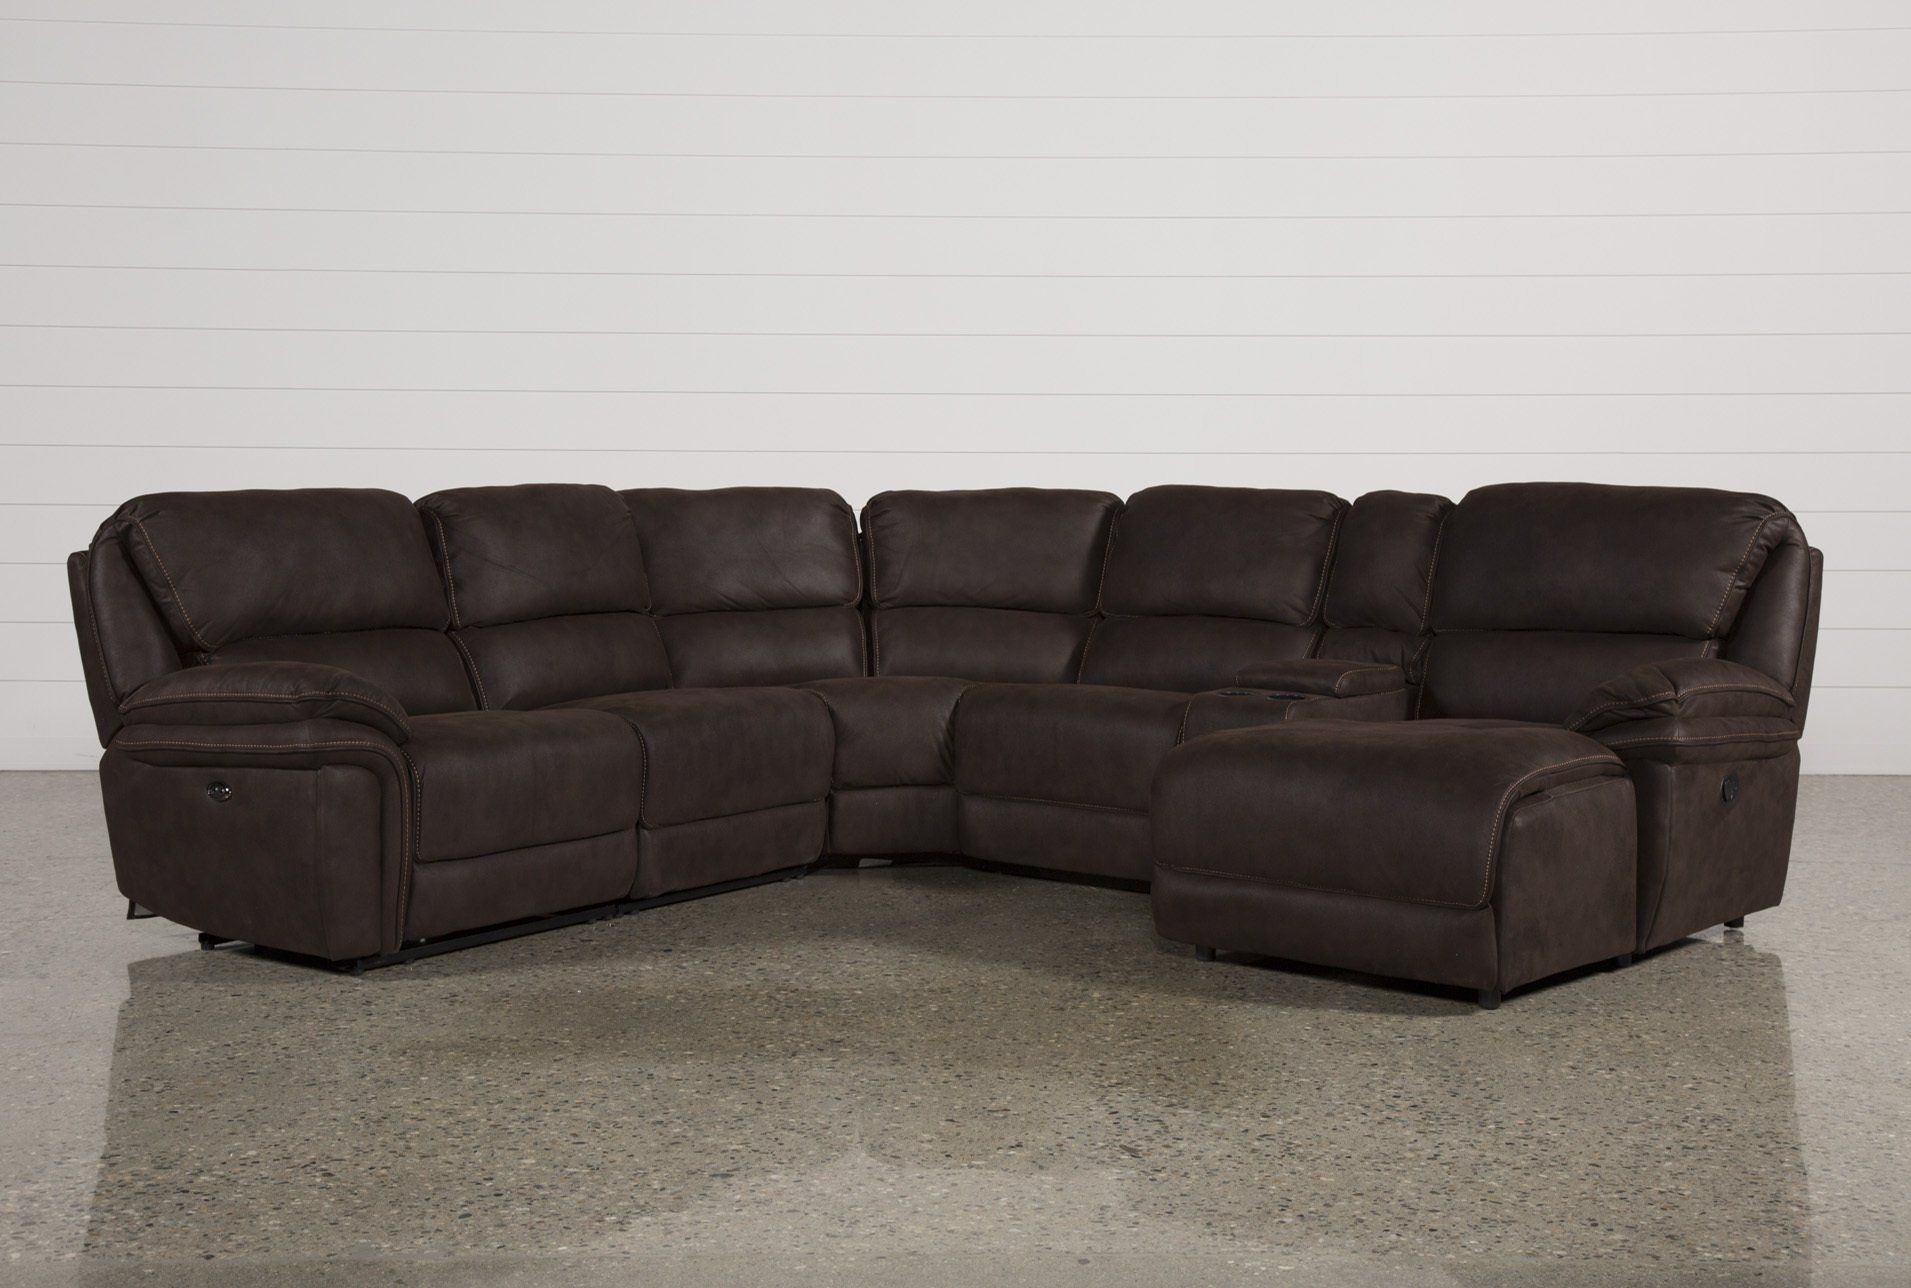 Norfolk Chocolate 6 Piece Sectional W/raf Chaise | Pinterest Pertaining To Norfolk Chocolate 6 Piece Sectionals (View 3 of 25)